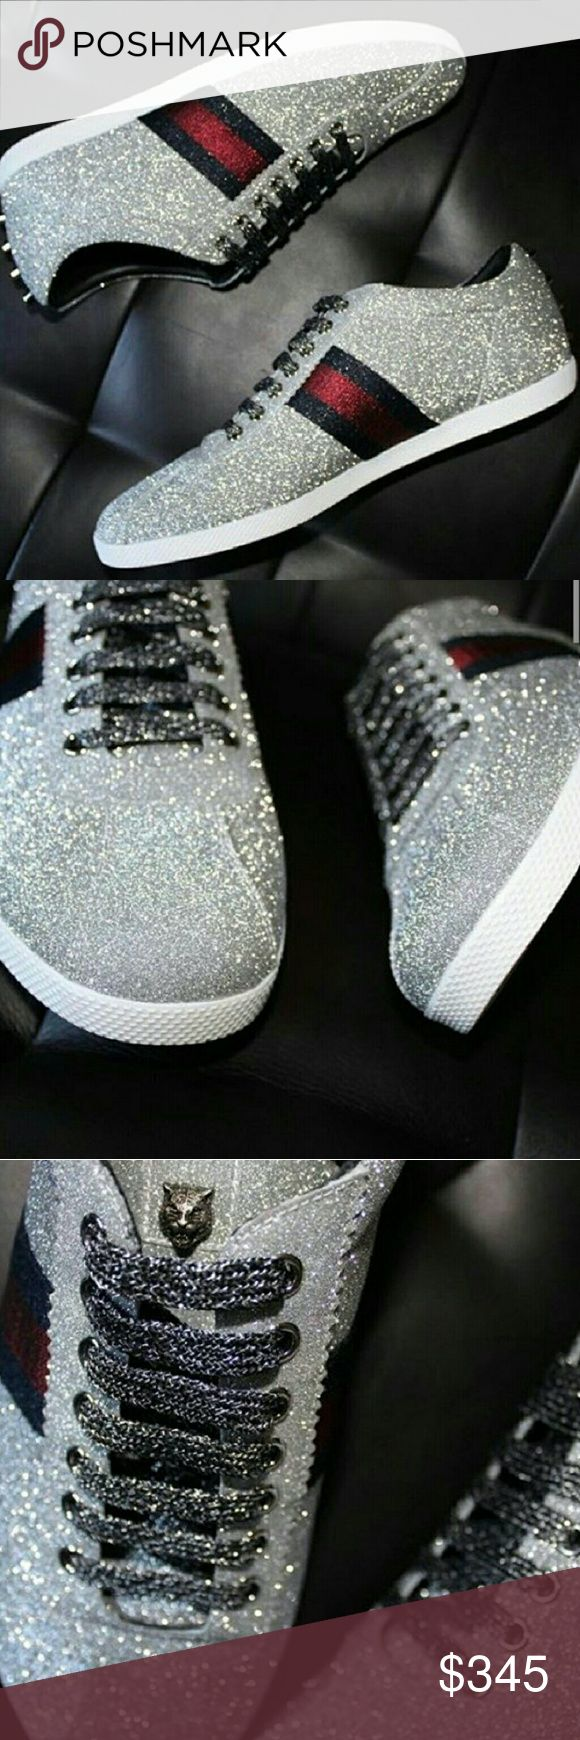 Gucci glitter studded sneakers size 12 Low-top sneaker in a sparkling fabric with Web detail. Men'sSilver glitter fabric with blue and red Web detail. narrow cut shoe. Size 12 Gucci Shoes Sneakers